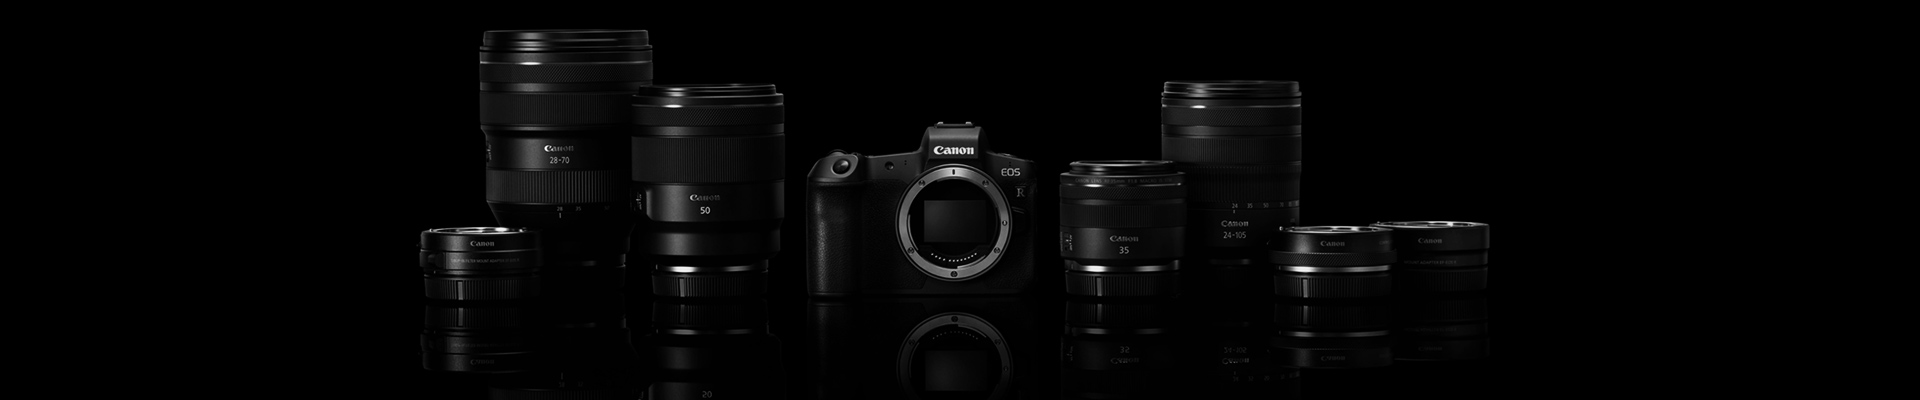 canon-brand-page.jpg